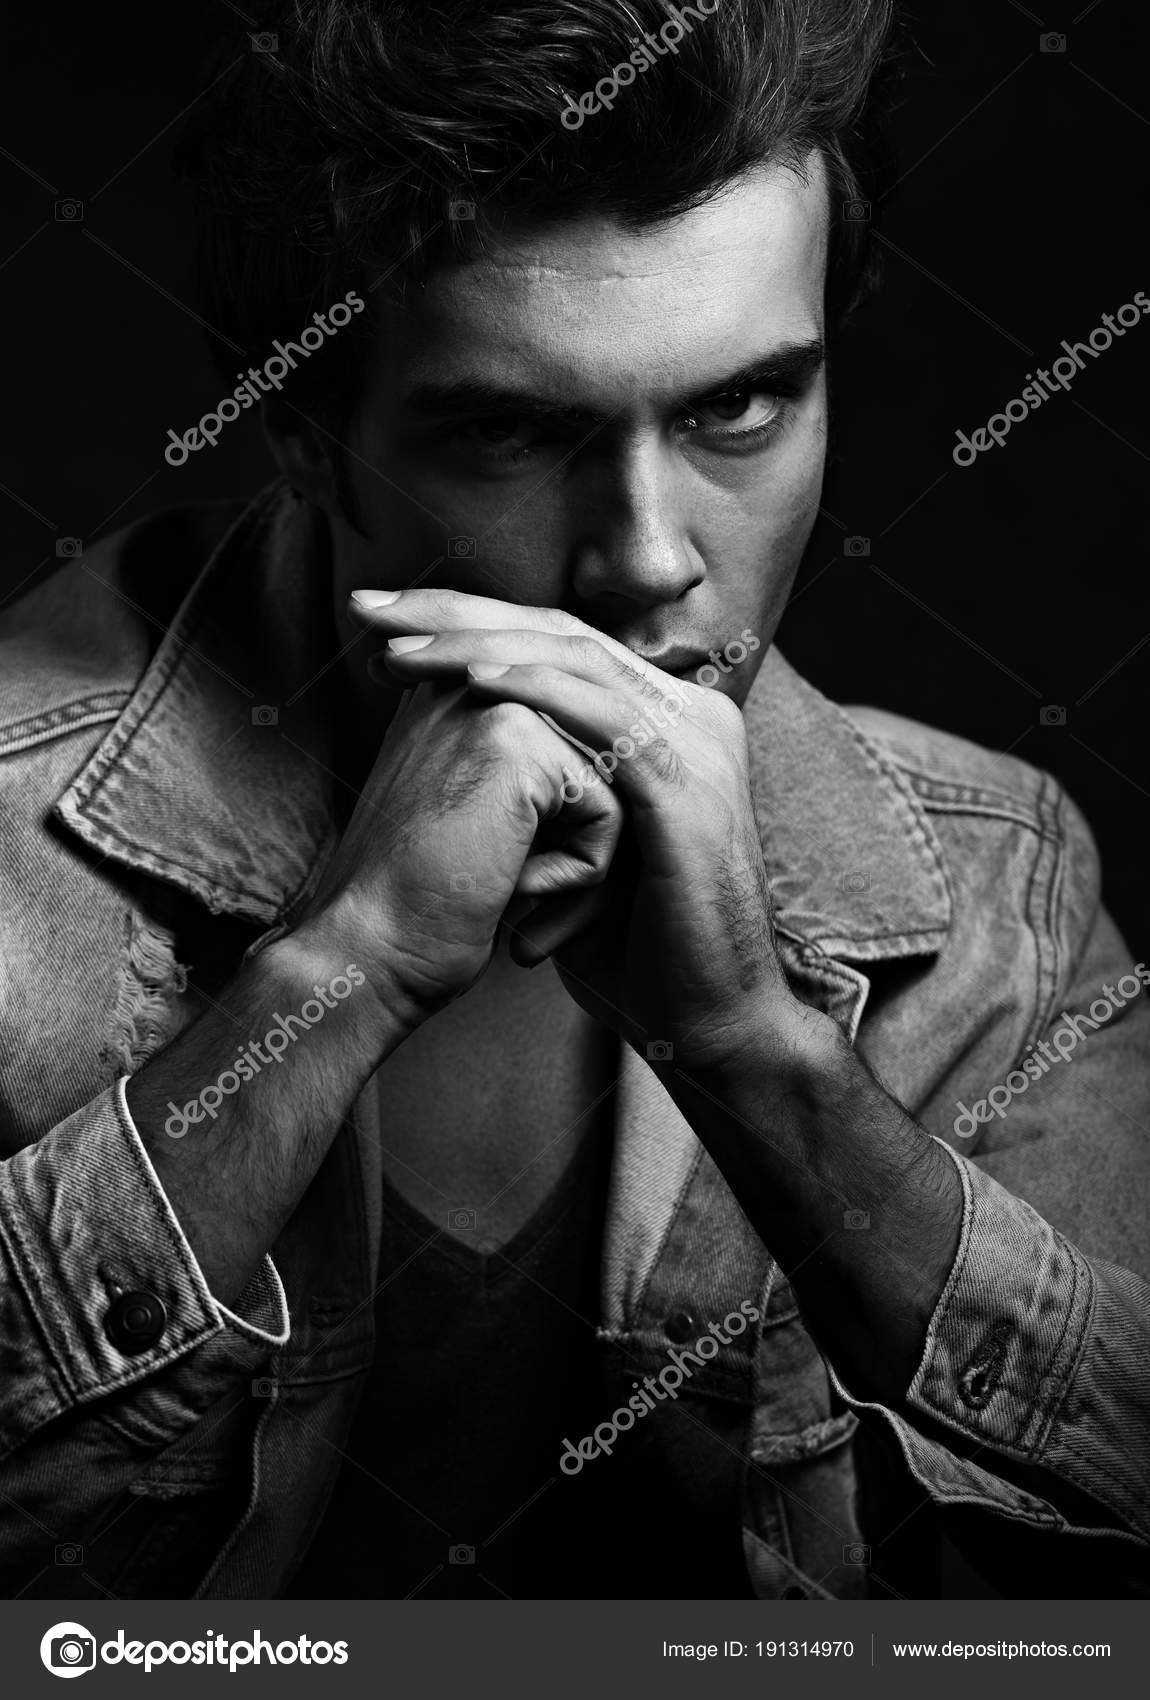 Handsome thinking male model posing in fashion blue jeans jacket looking on dark shadow background closeup black and white portrait photo by nastia1983